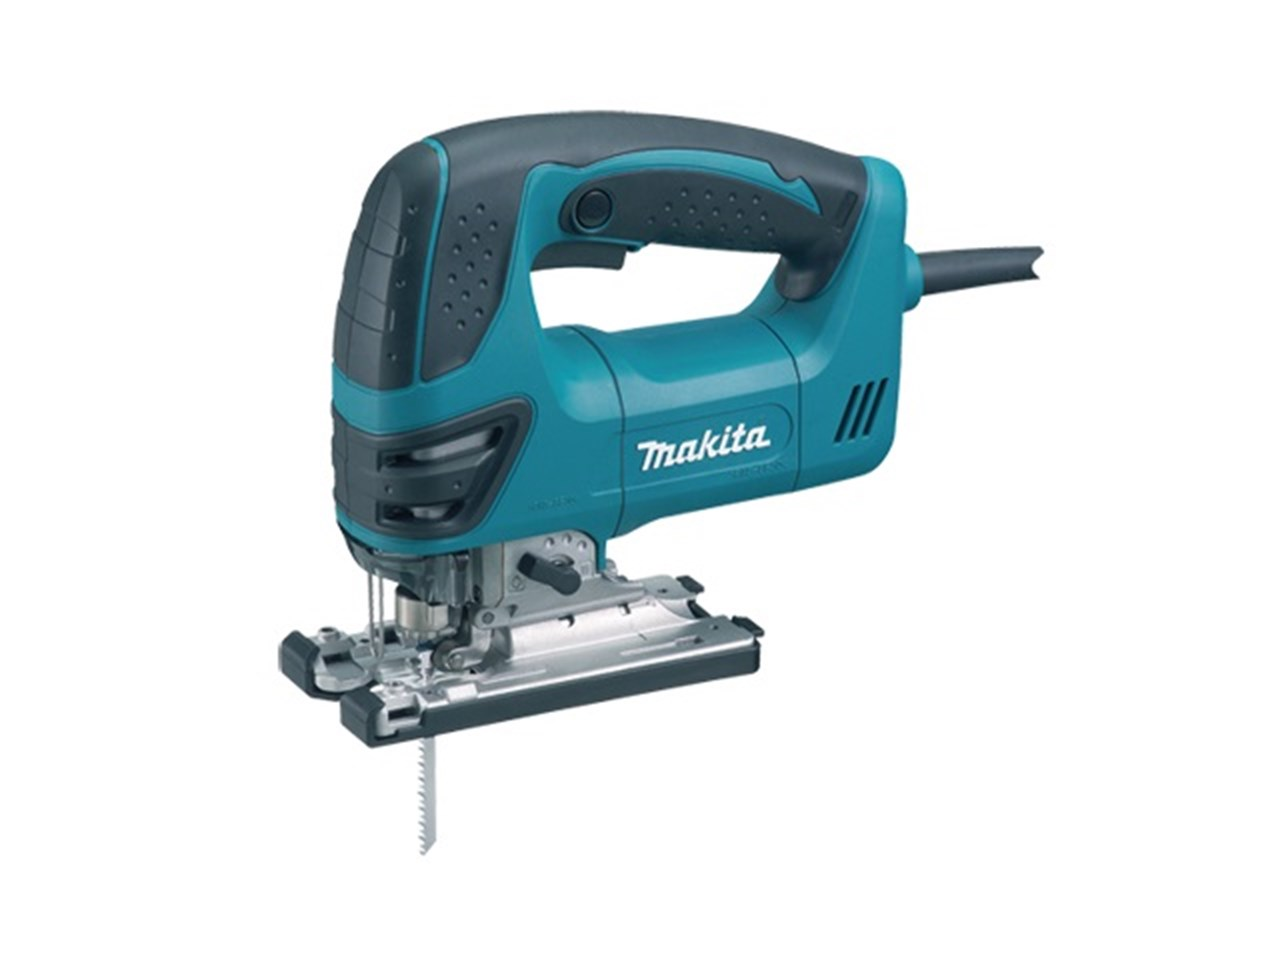 Makita 4350FCT 110V Orbital Action Jigsaw & Light 720W - Quick Release Tool-Less Blade Change